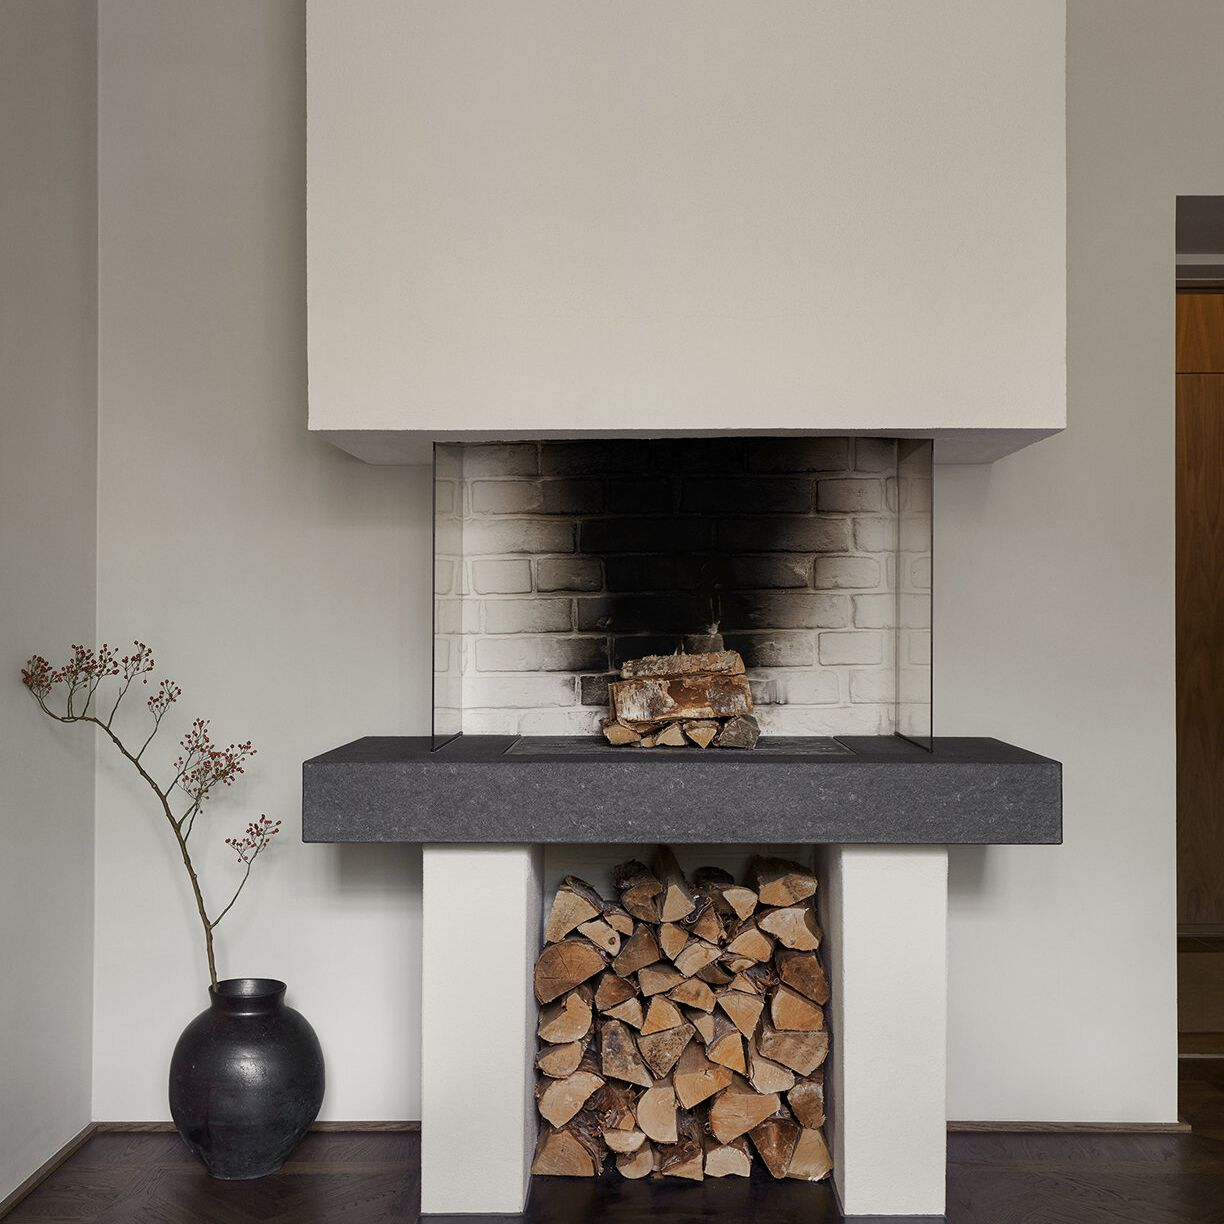 An industrial fireplace with a smoke stain